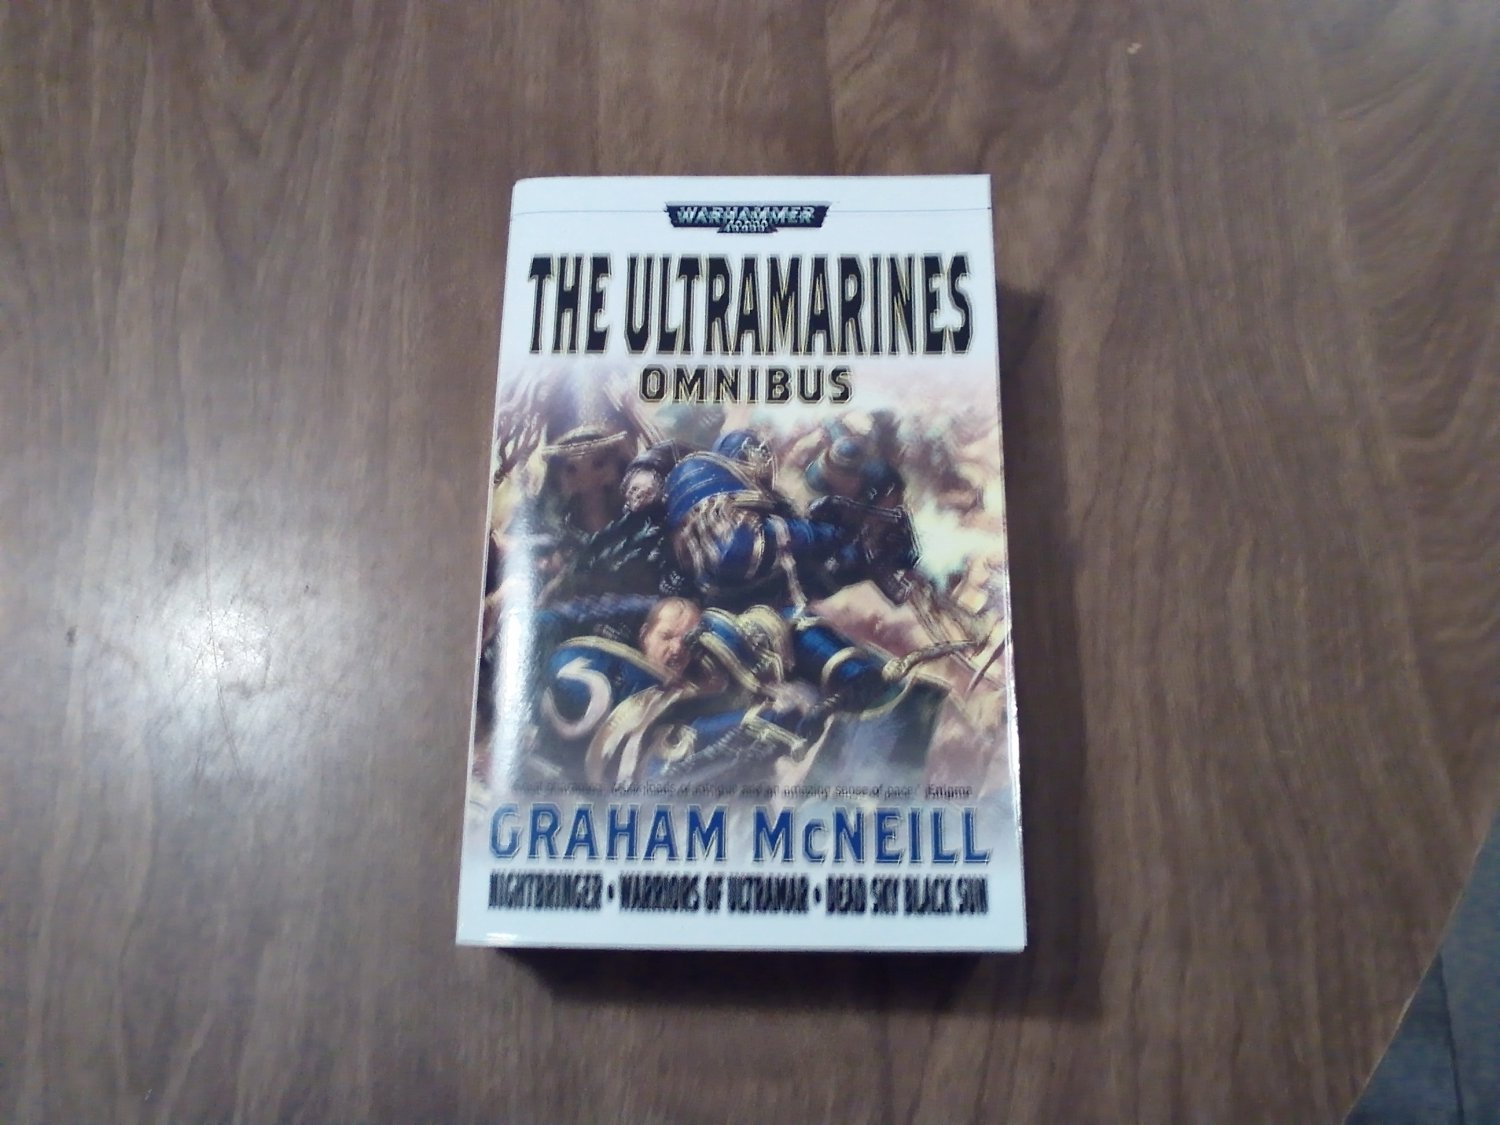 The Ultramarines Omnibus by Graham McNeill Warhammer (2008) (WCC2) 4 stories in one book